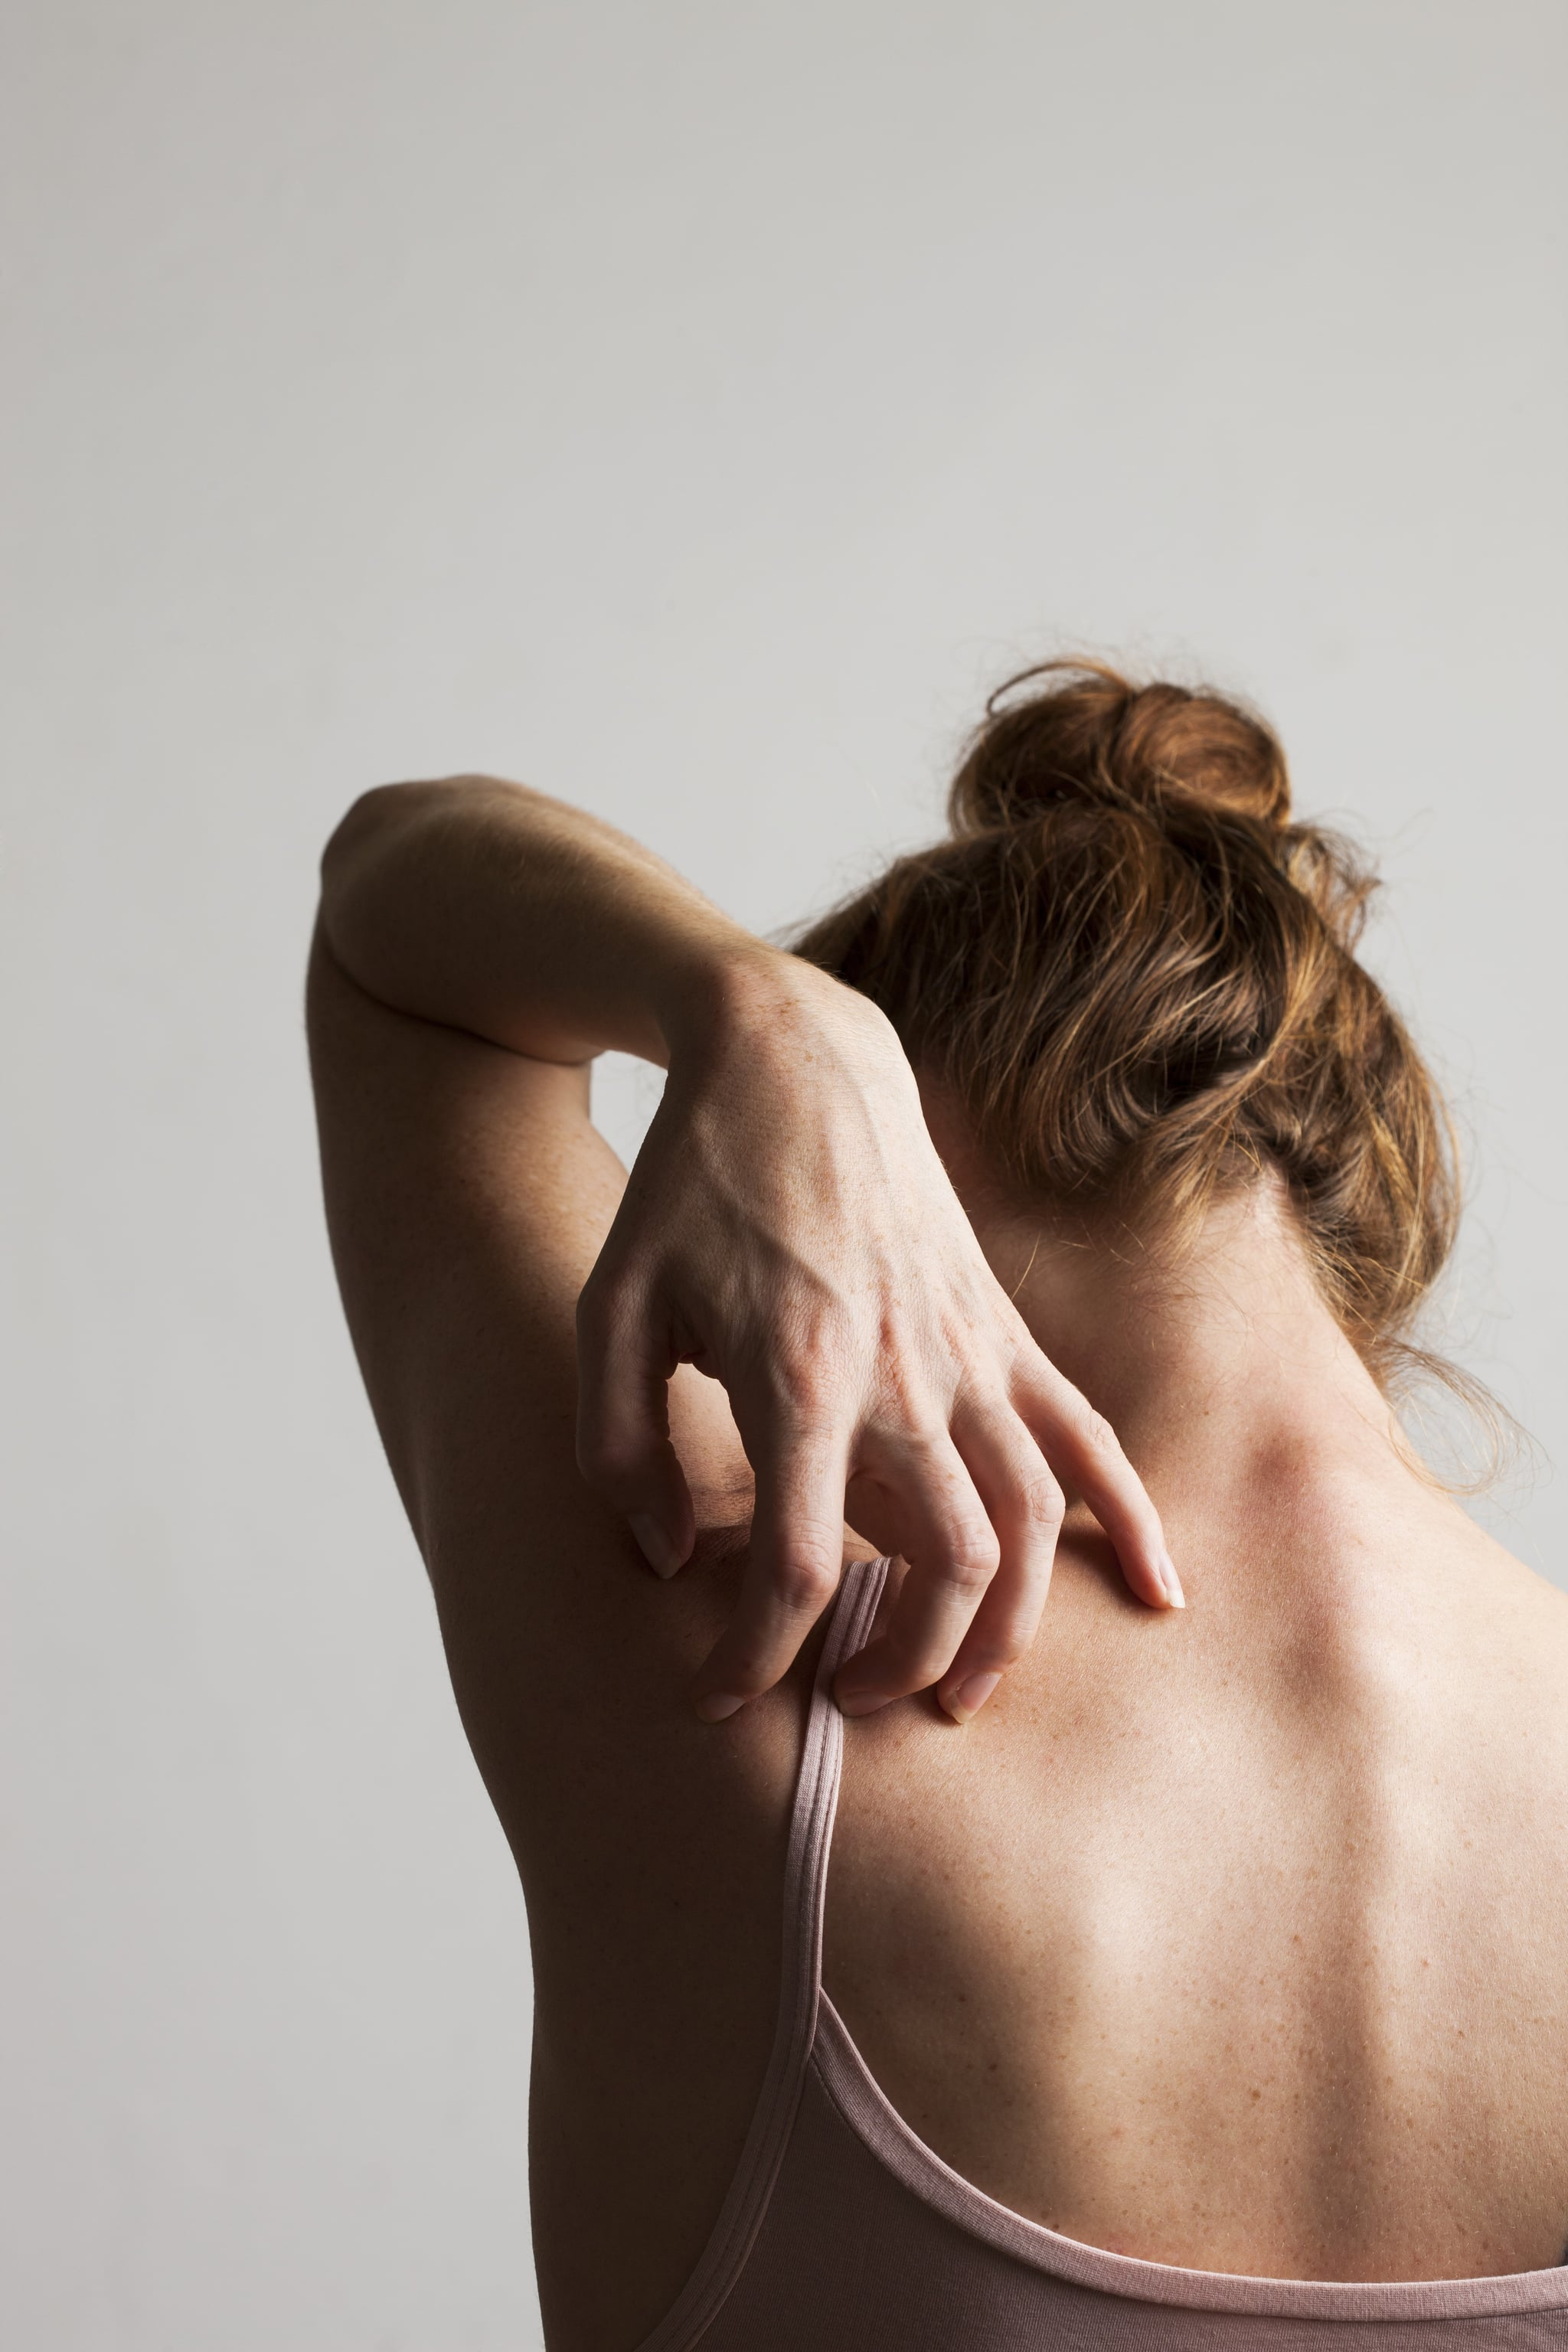 MODEL RELEASED. Woman scratching her itchy back.